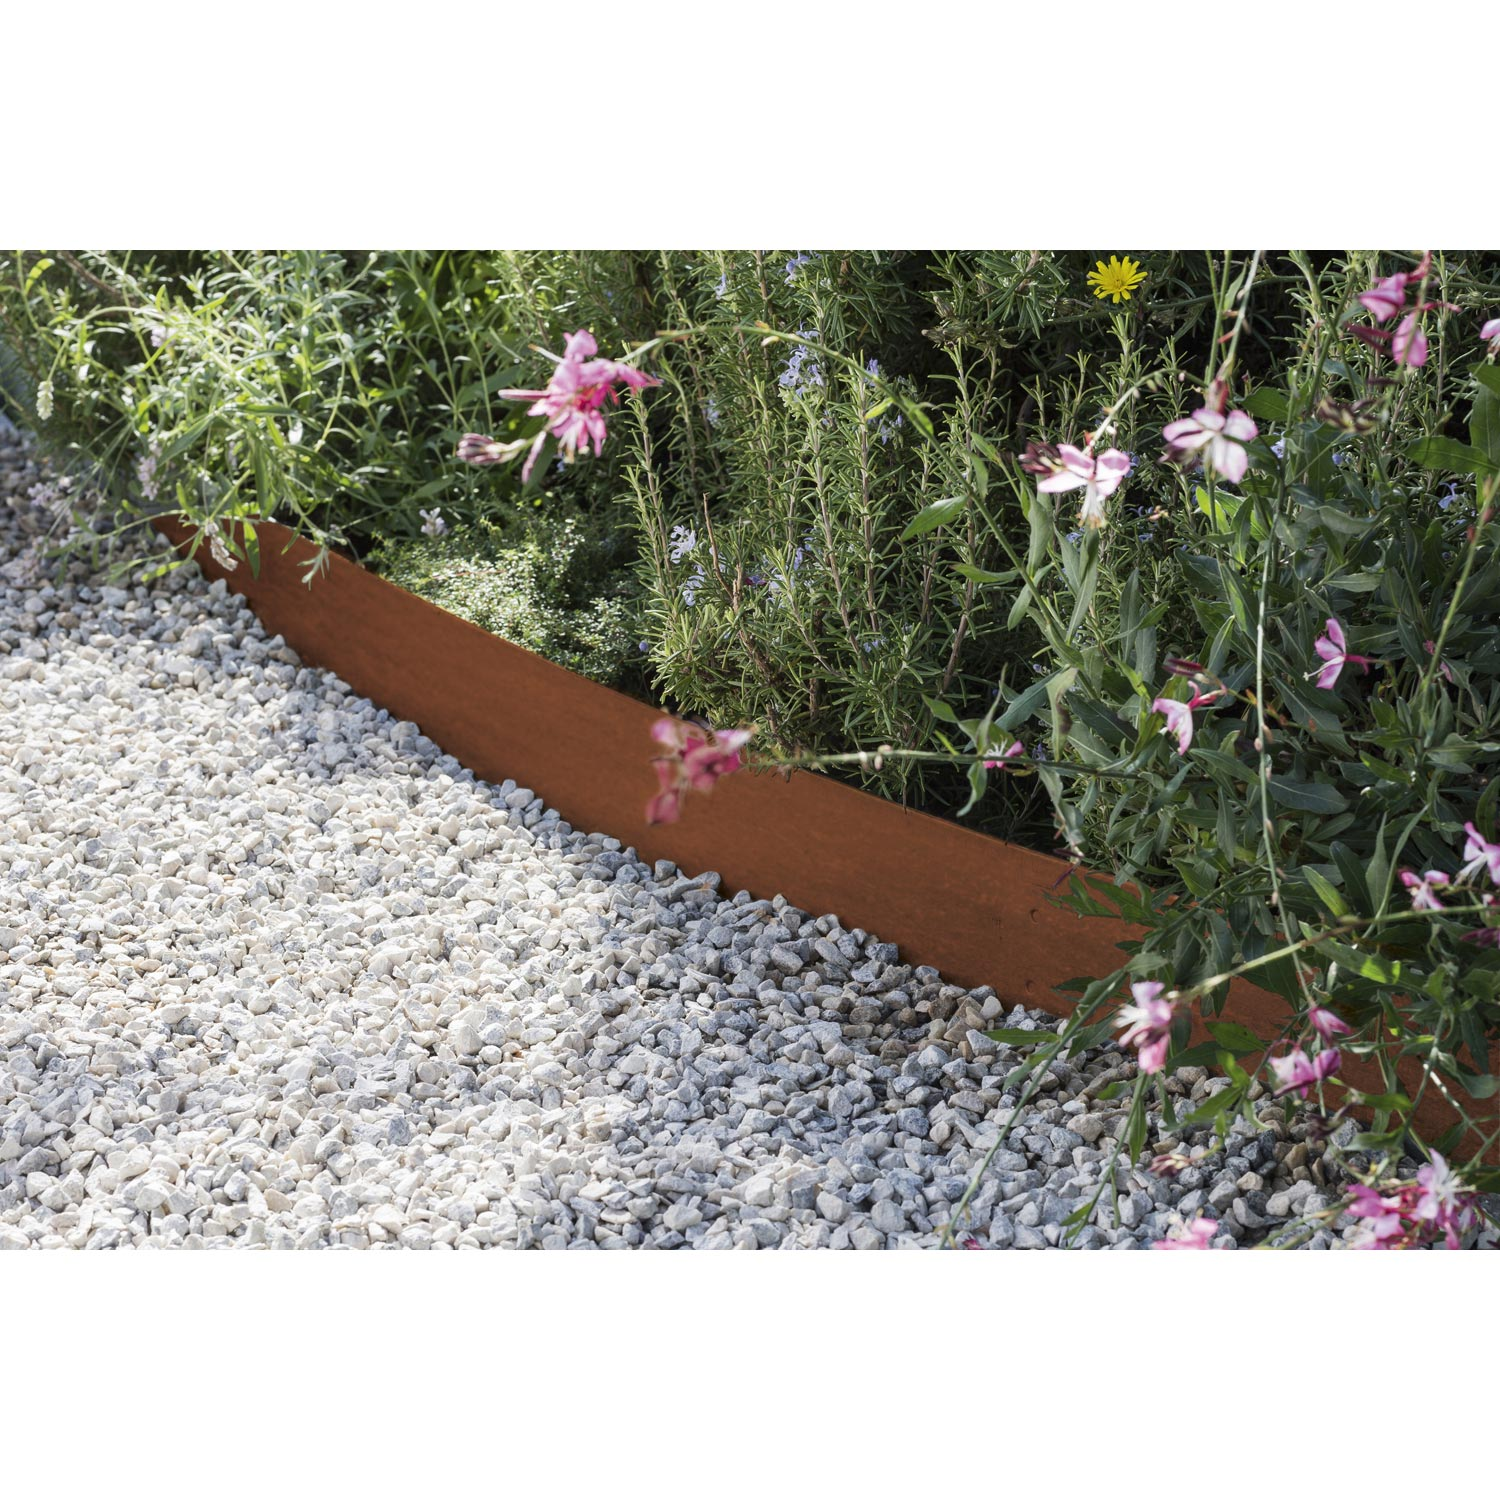 Bordure planter aspect rouille acier galvanis marron h for Bordure metal pour jardin